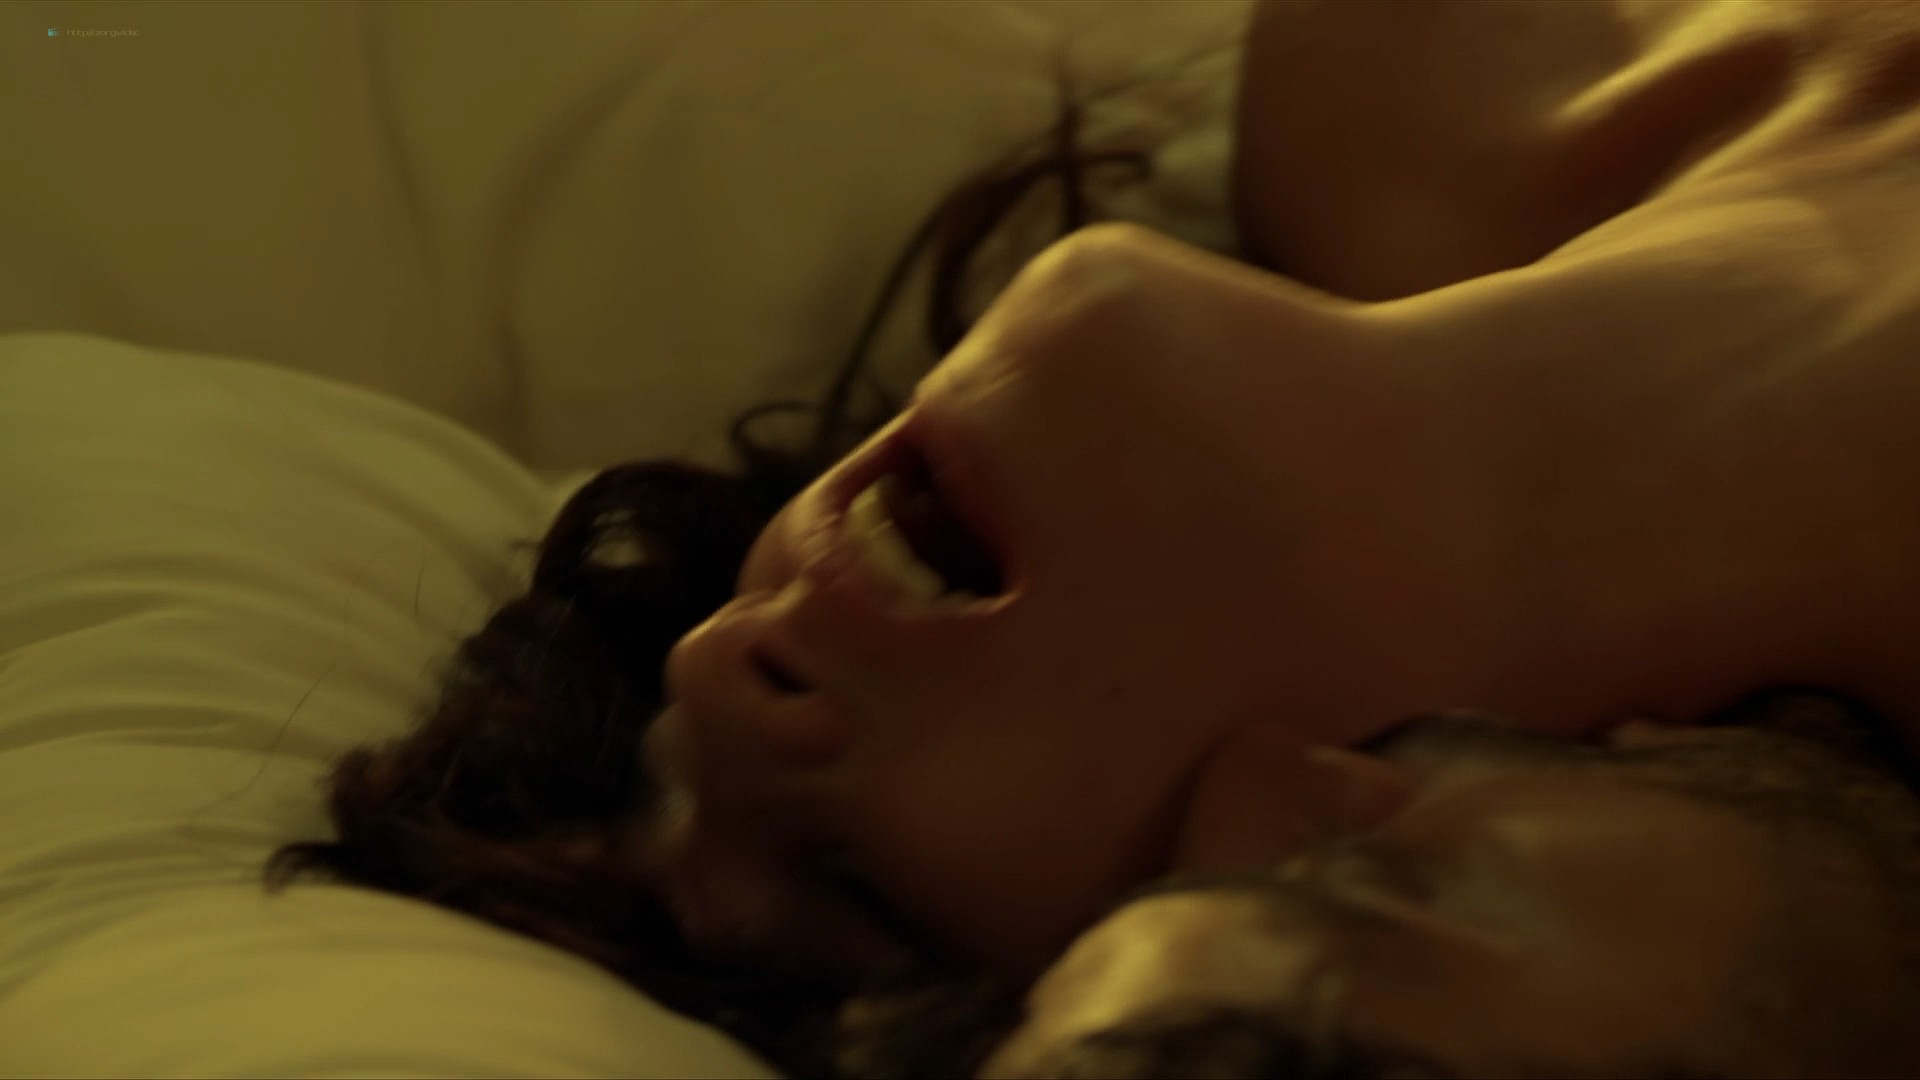 Eva Arias nude and a lot of sex - 7:20 Once a Week (2018) HD 1080p Web (14)